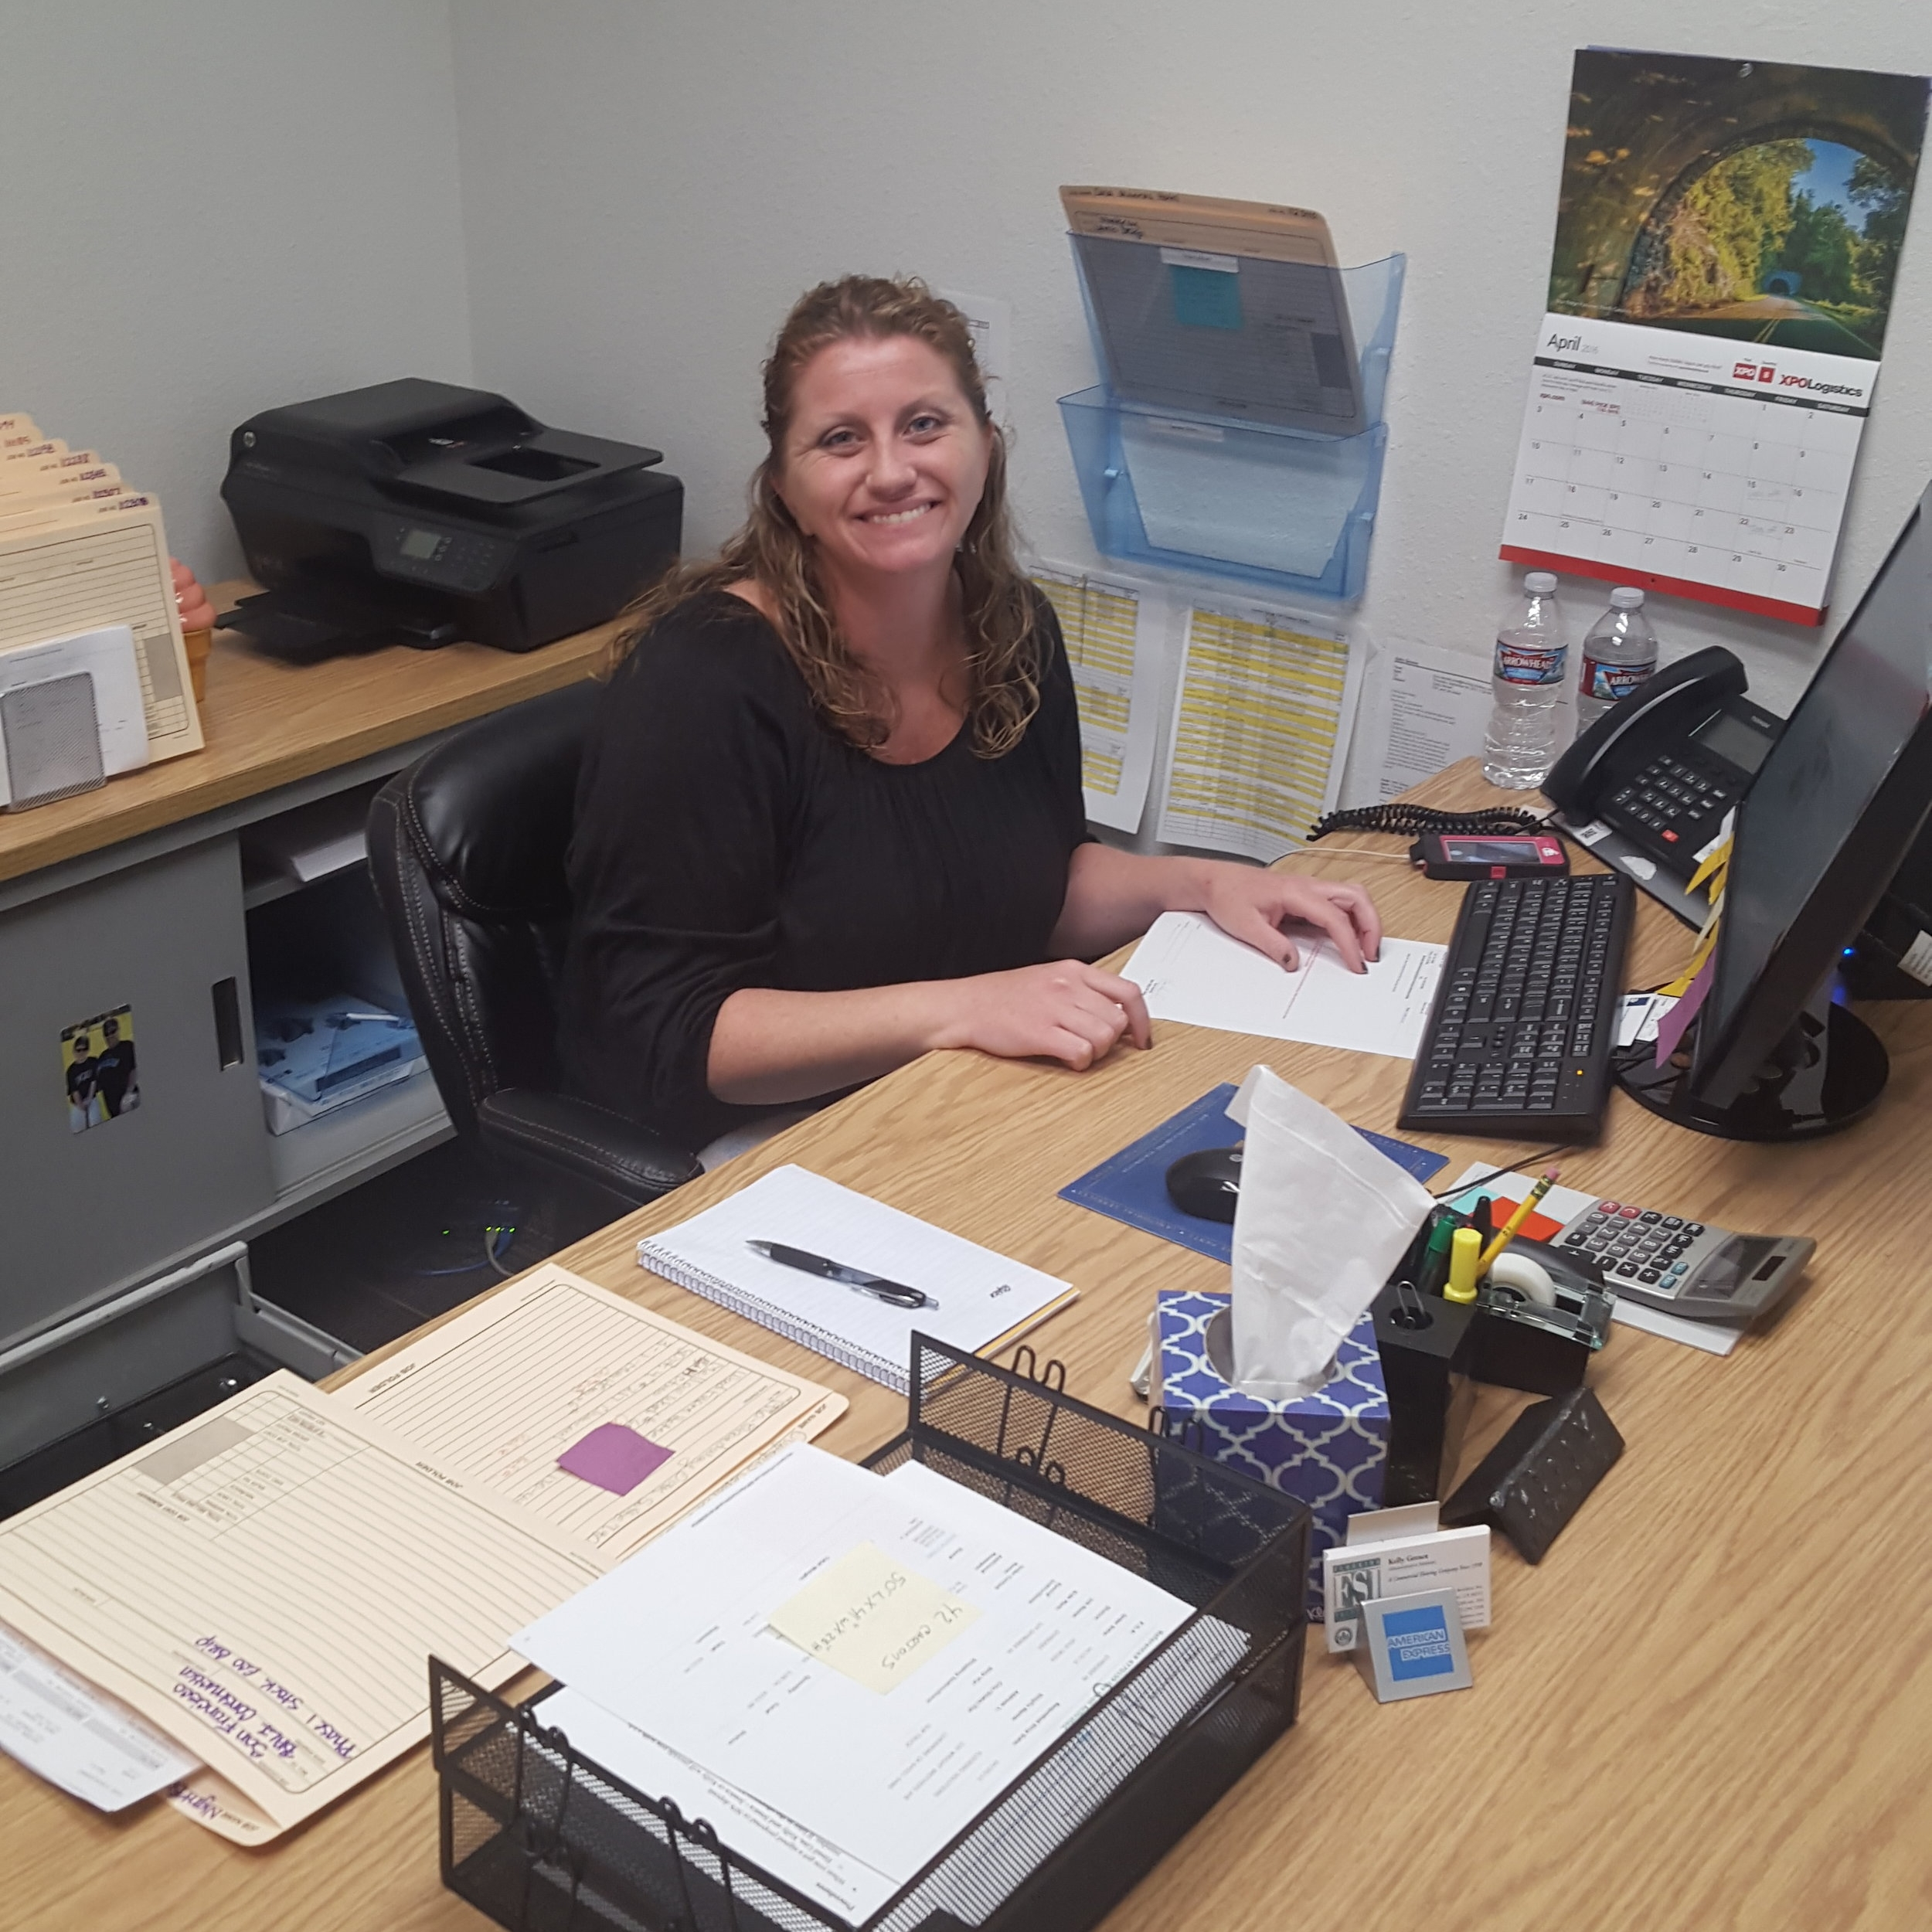 Kelly Gerace, Purchasing Manager   17 years in flooring  6 years at FSI    Kelly@flooring-solutions.com